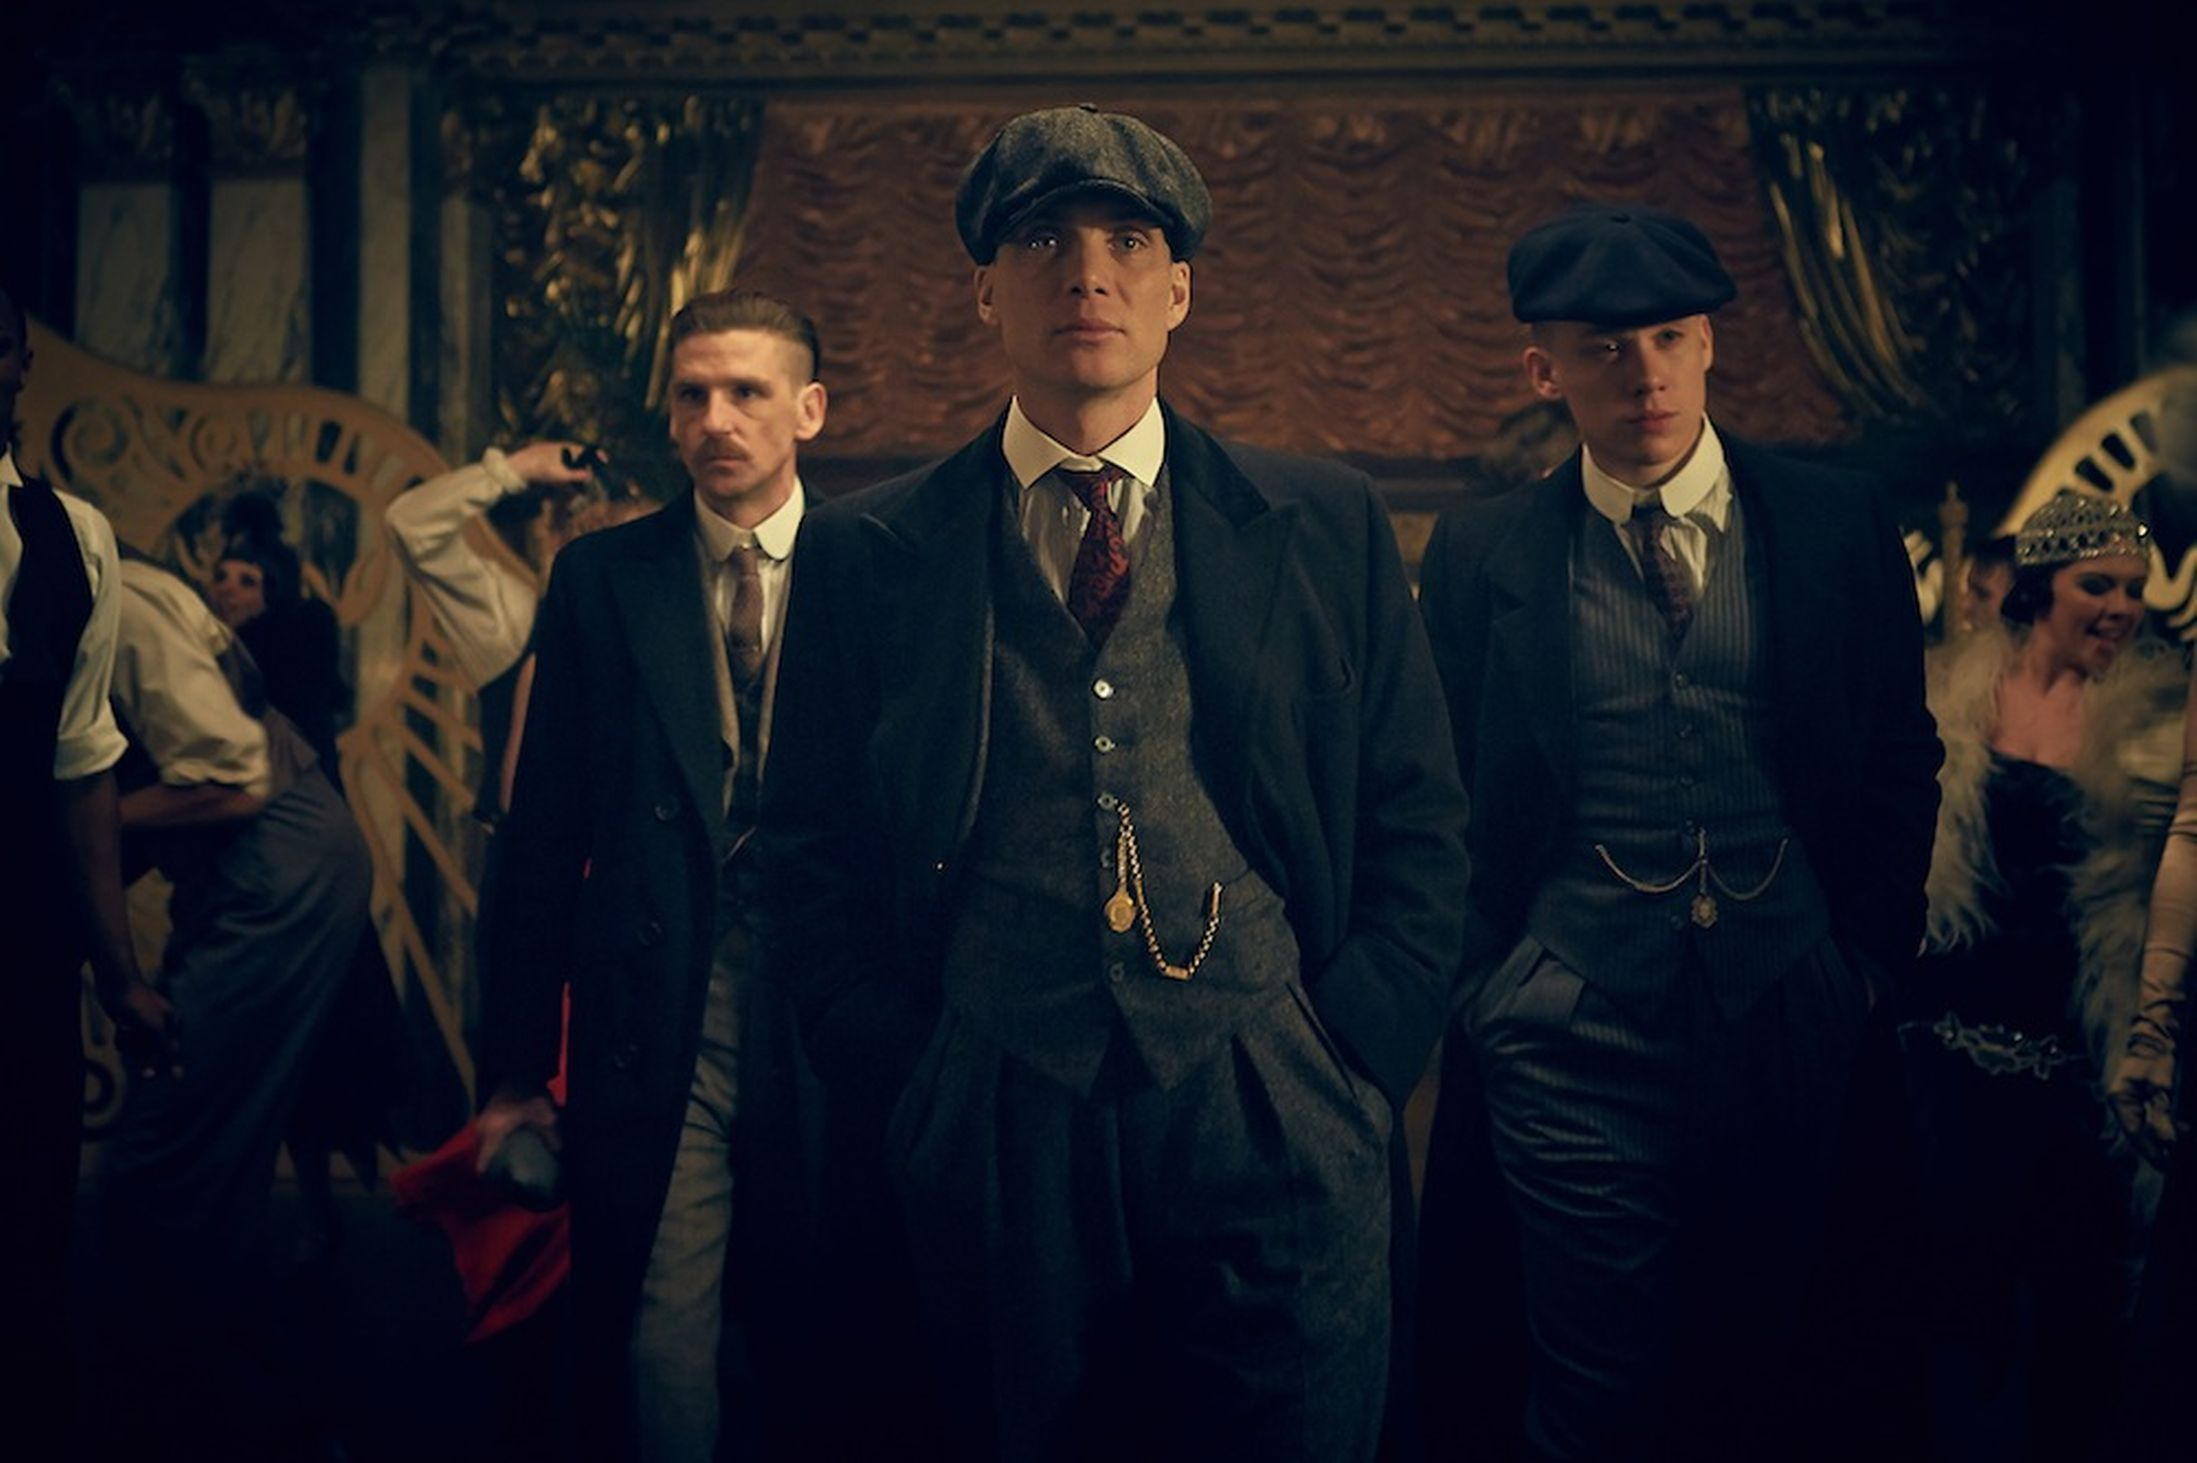 Peaky-Blinders-Series 2 (8)